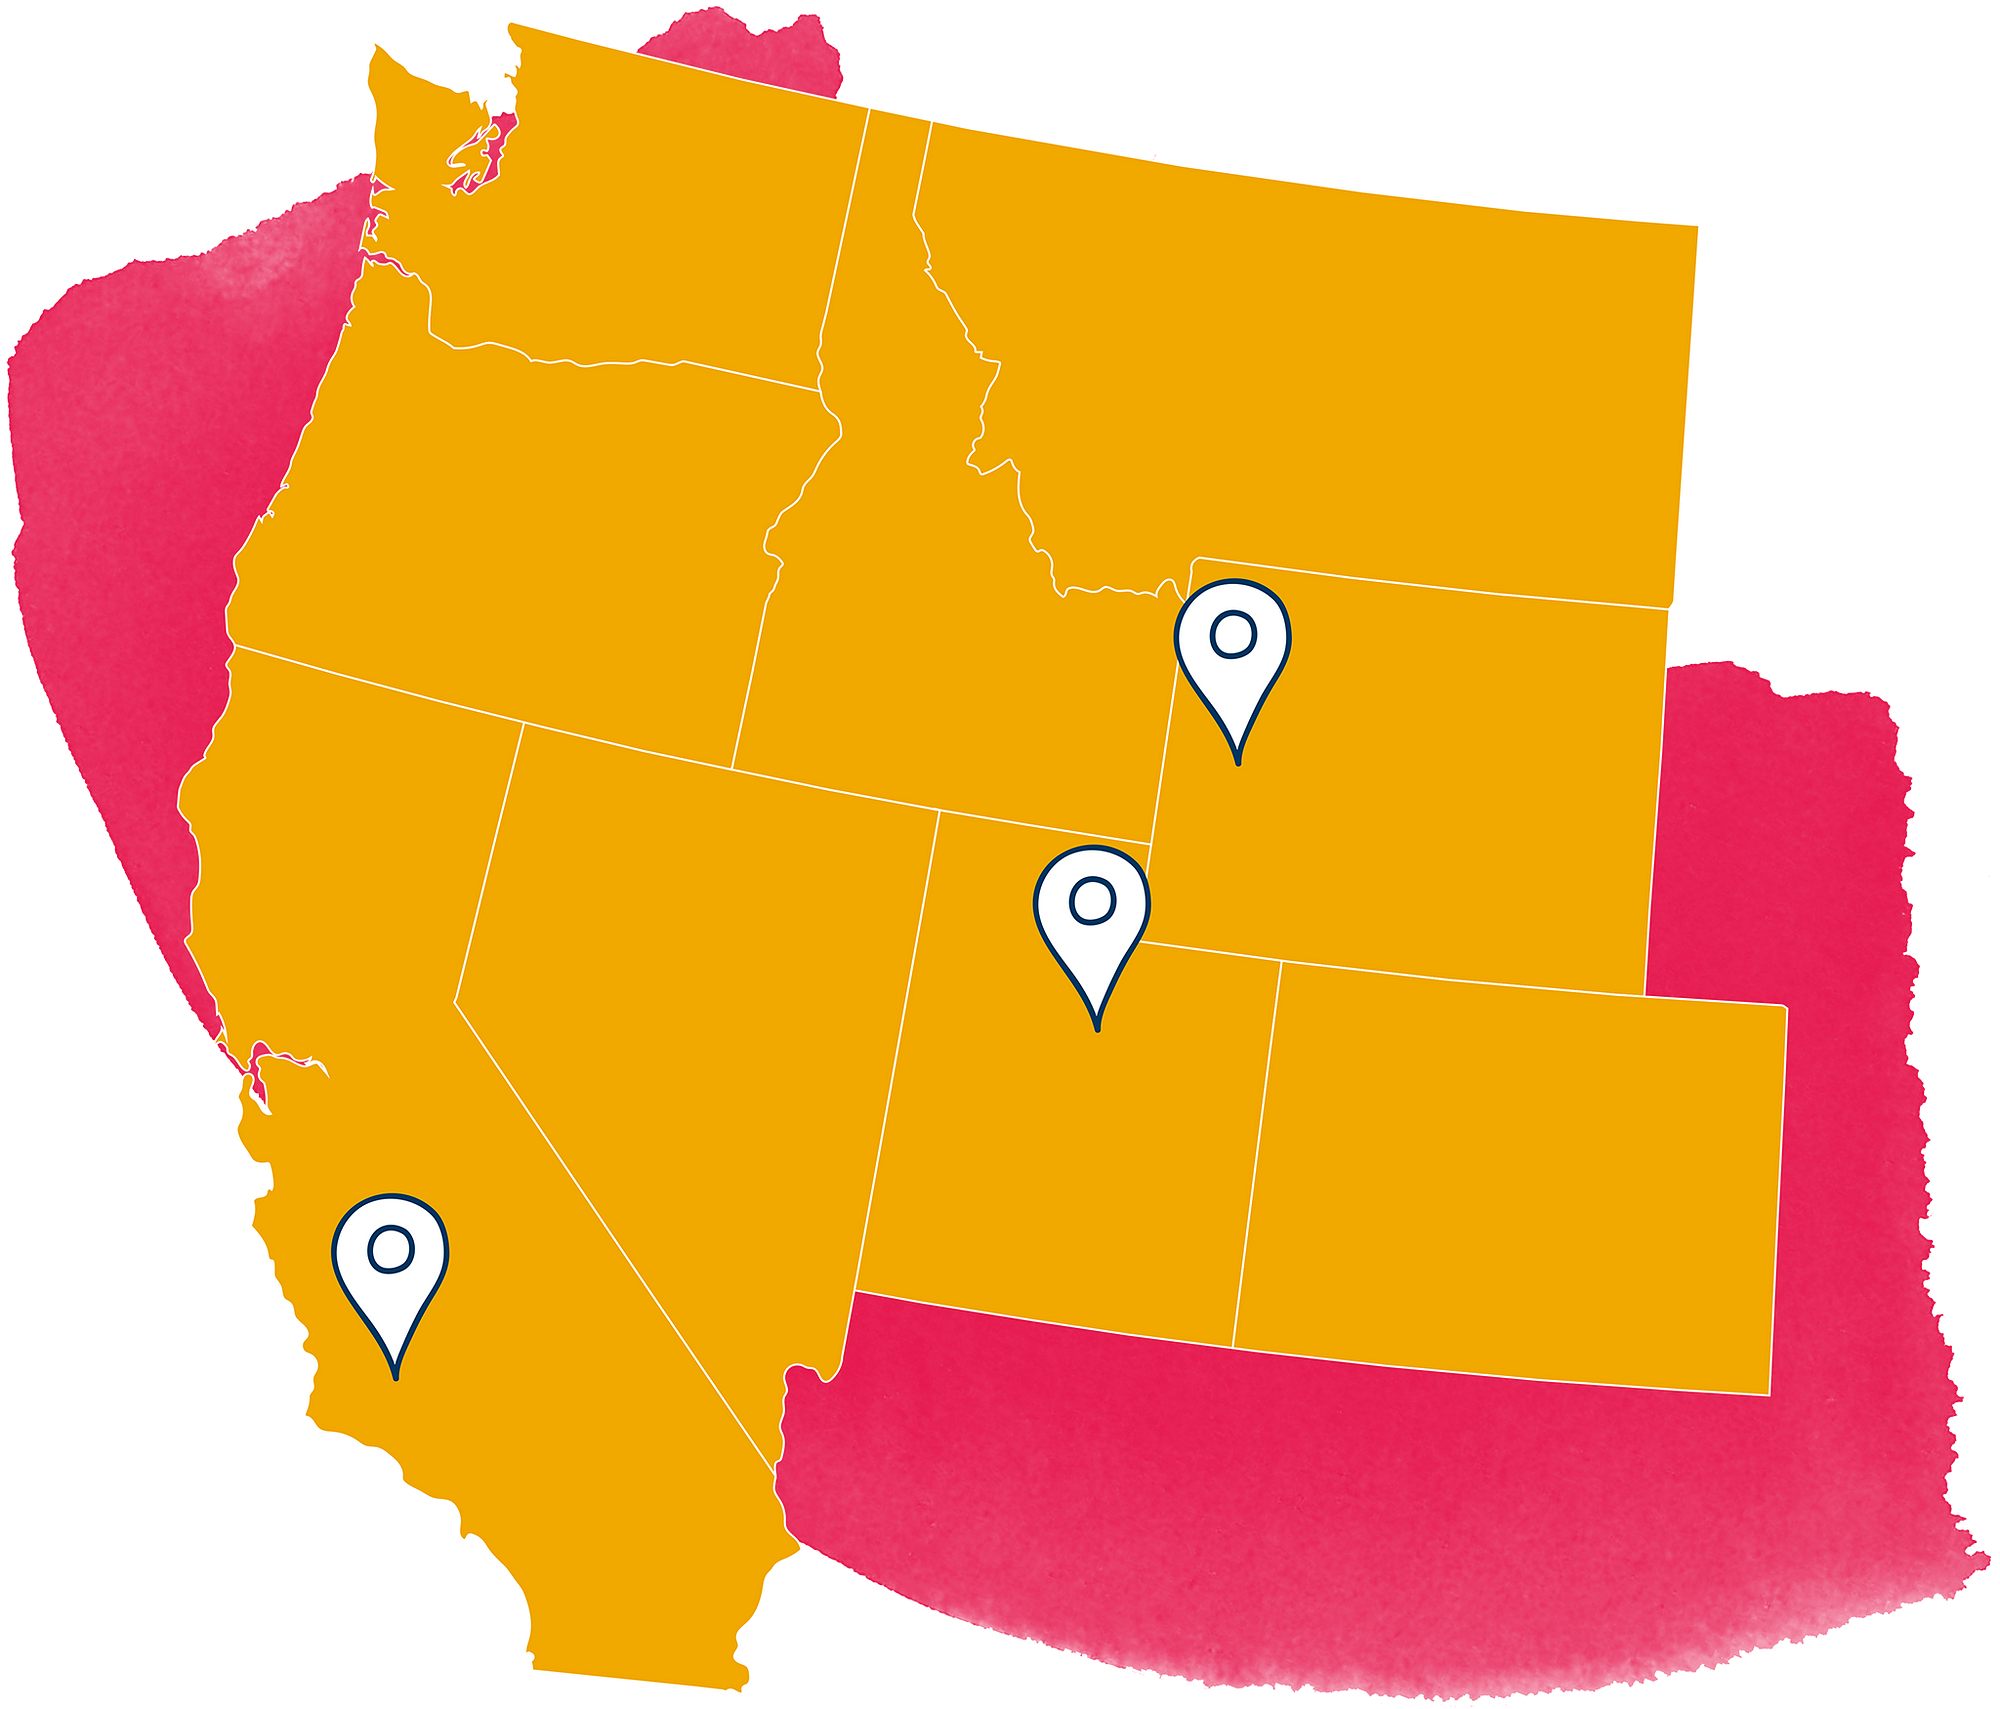 US west region map with pins